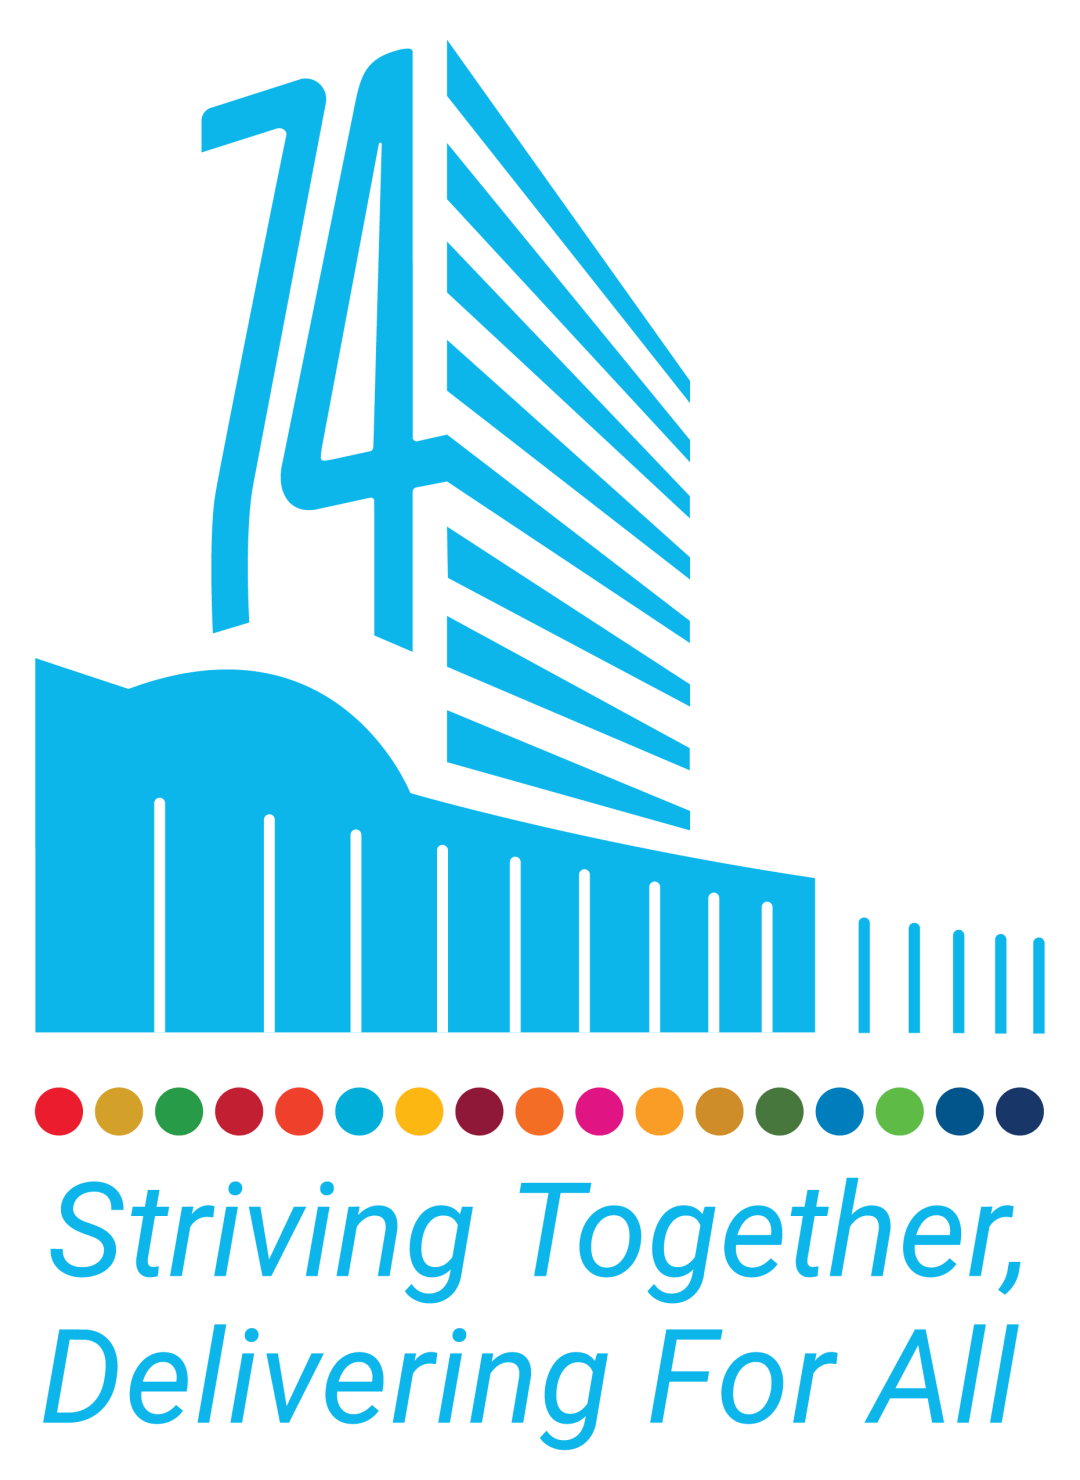 UN General Assembly 74th Session Logo